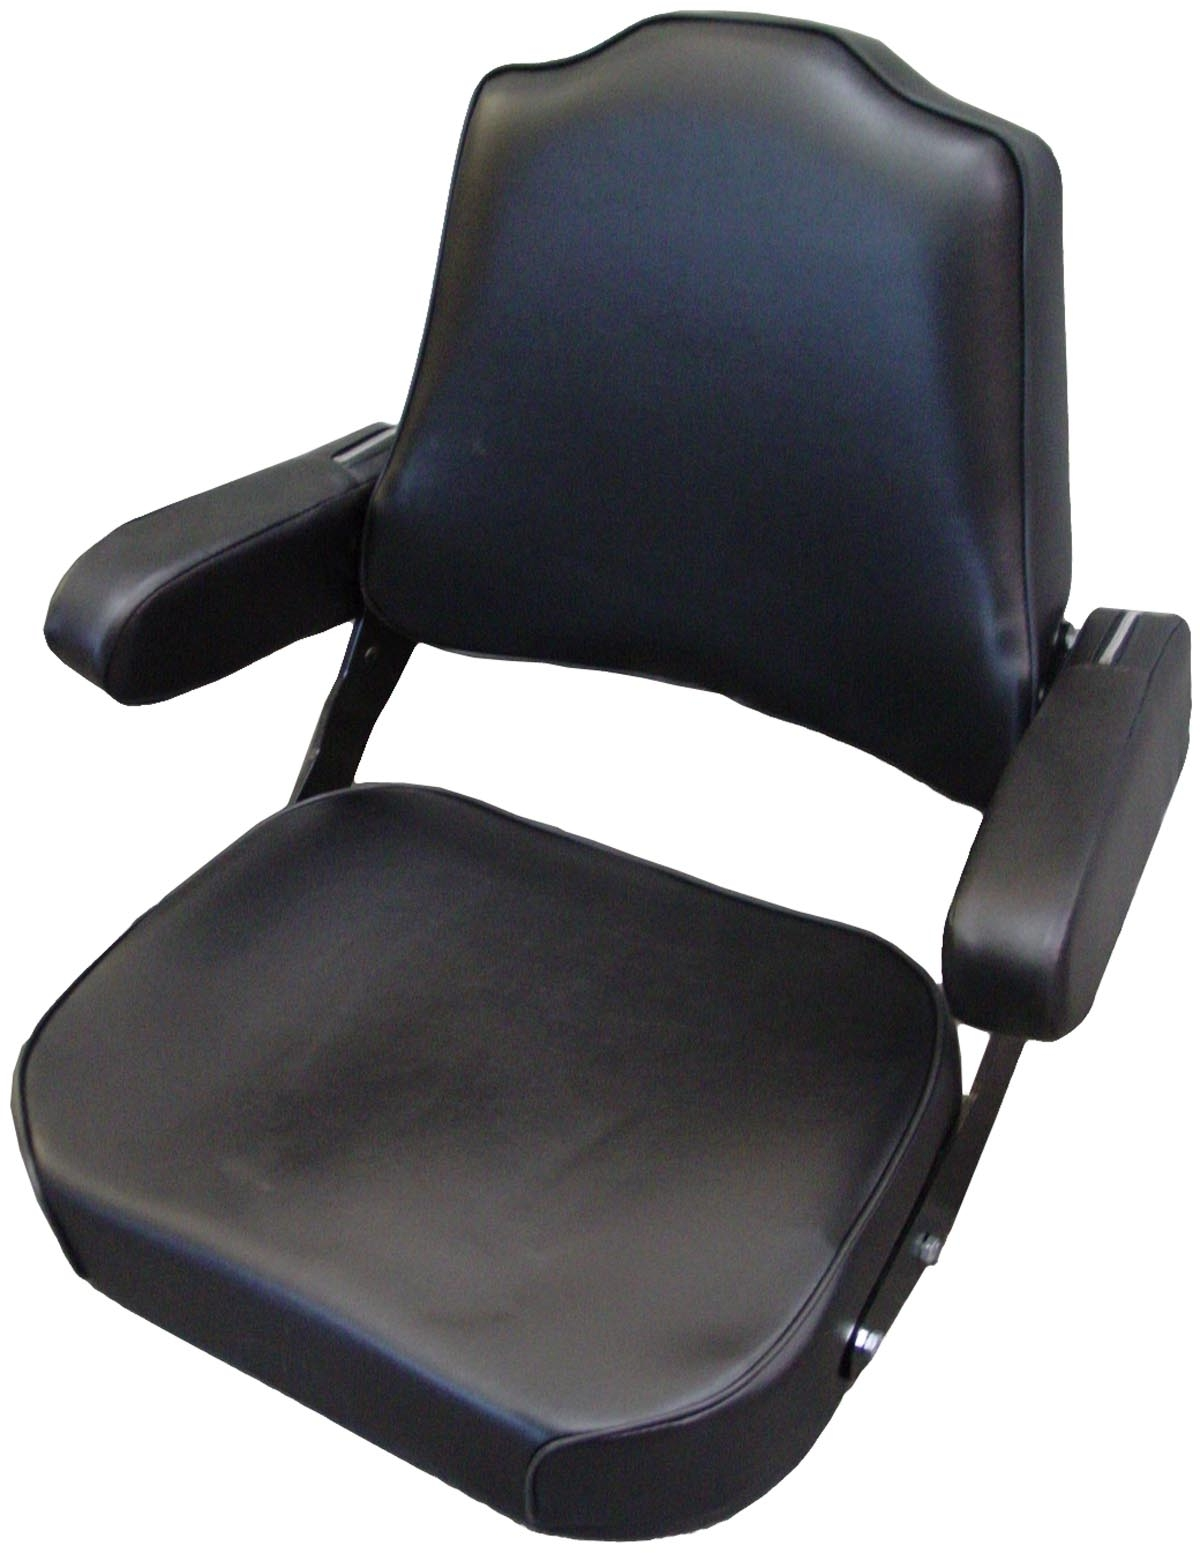 Seat Assembly With Armrests Restoration Quality Case Ih